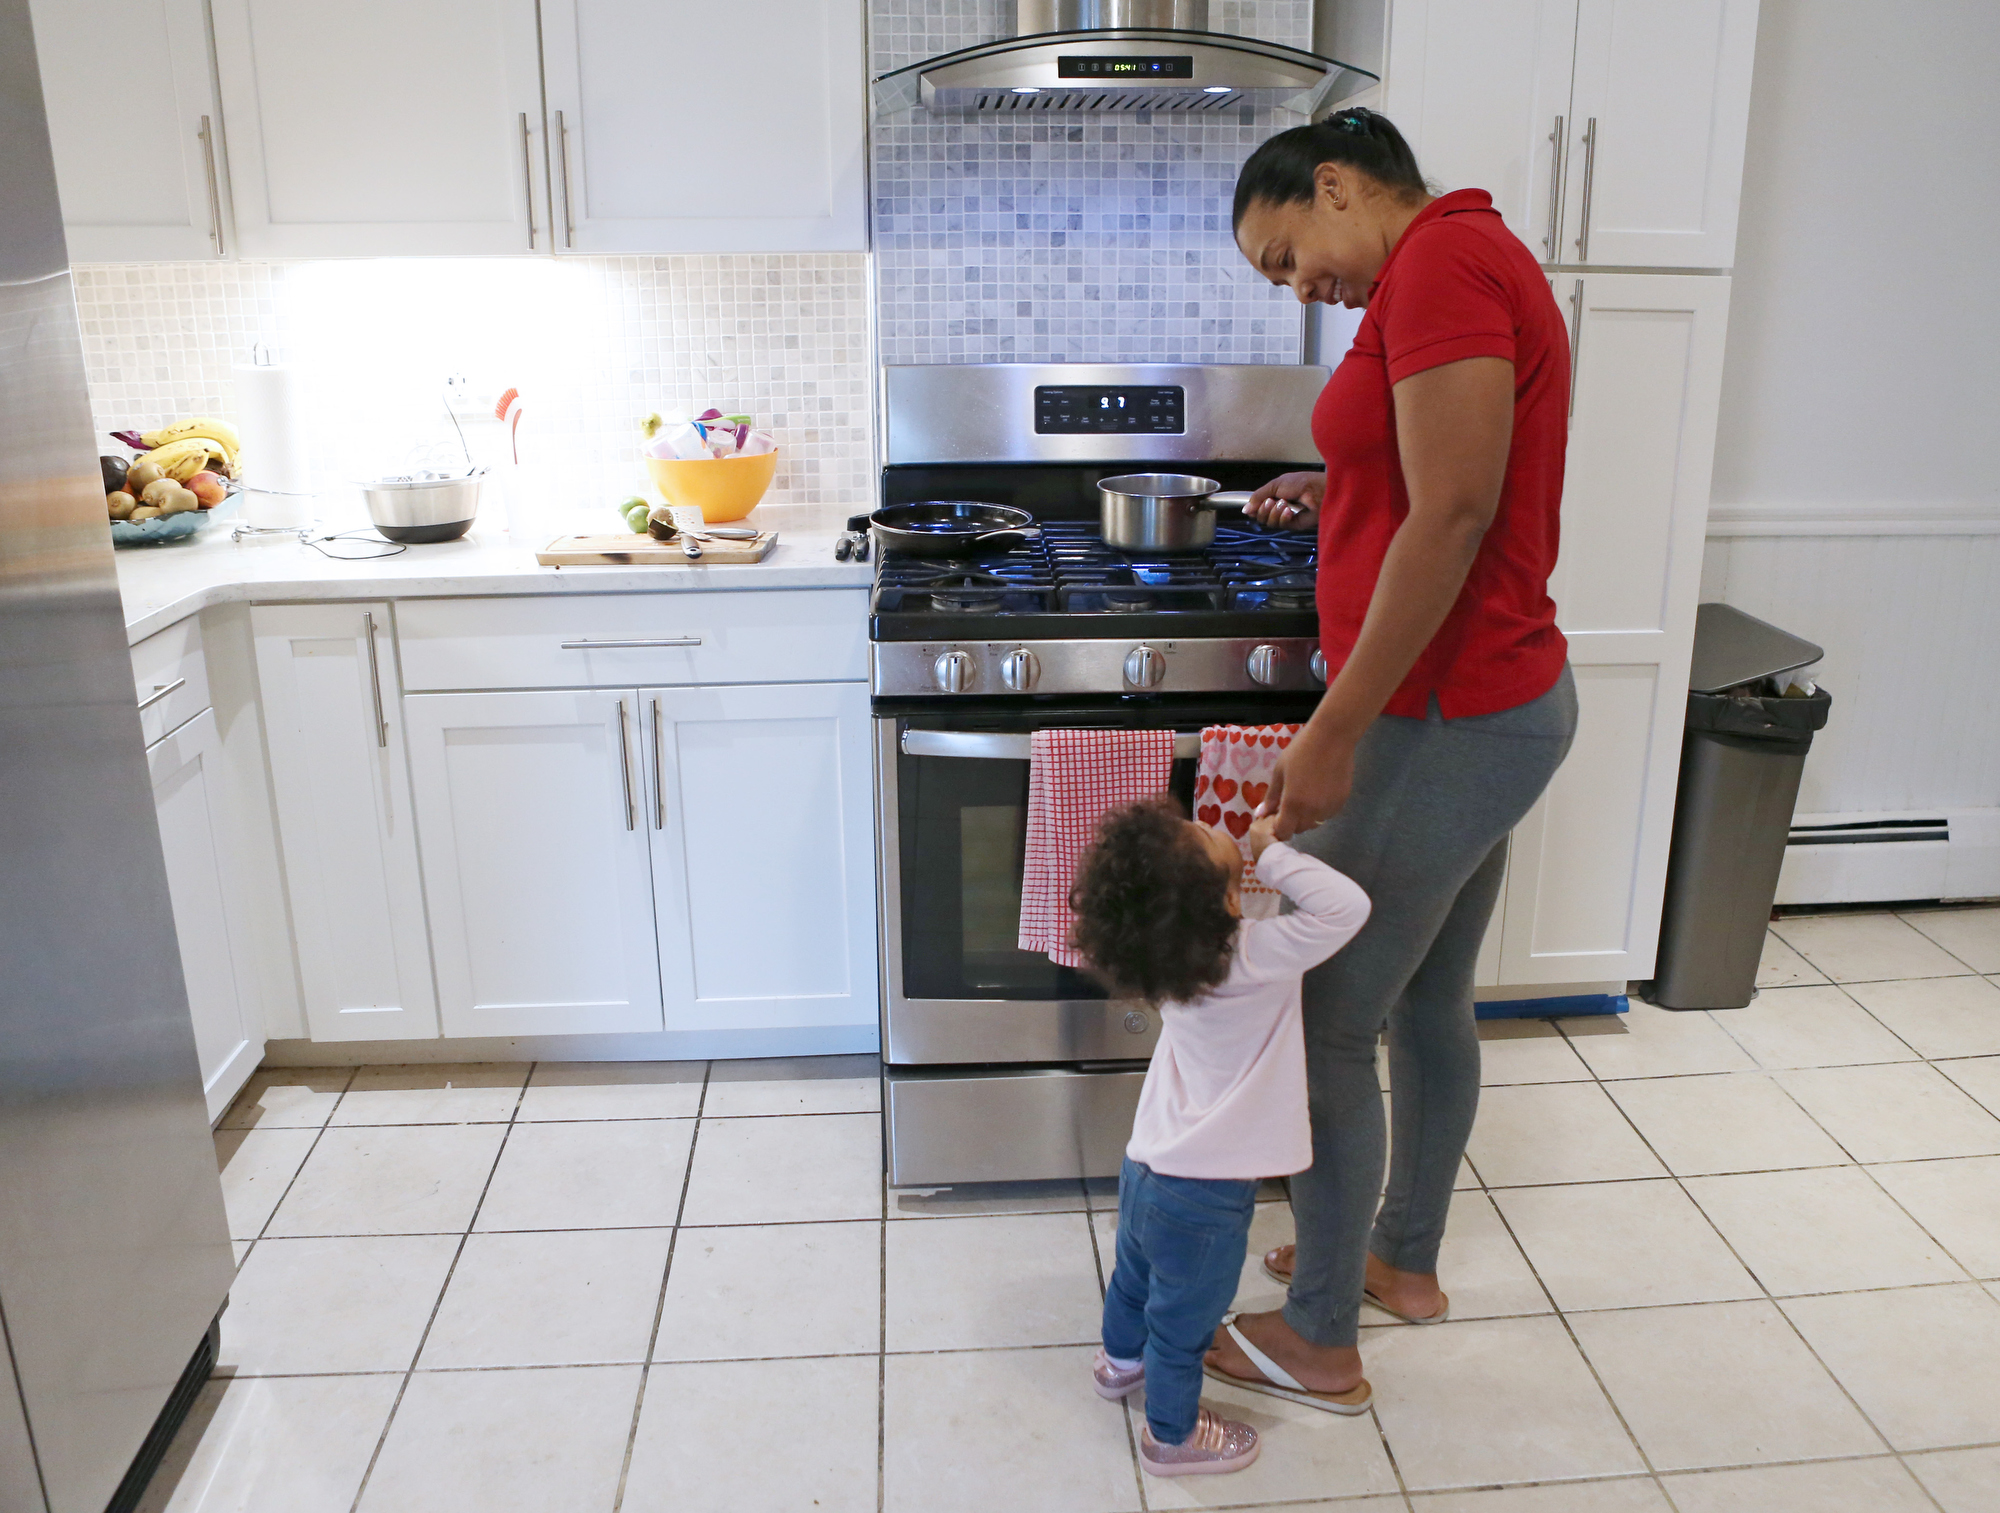 Yohanny Cespedes interacts with her daughter as she prepares breakfast on a gas stove on Sept. 12, 2019 in Lawrence, Massachusetts. Credit: Angela Rowlings/MediaNews Group/Boston Herald via Getty Images